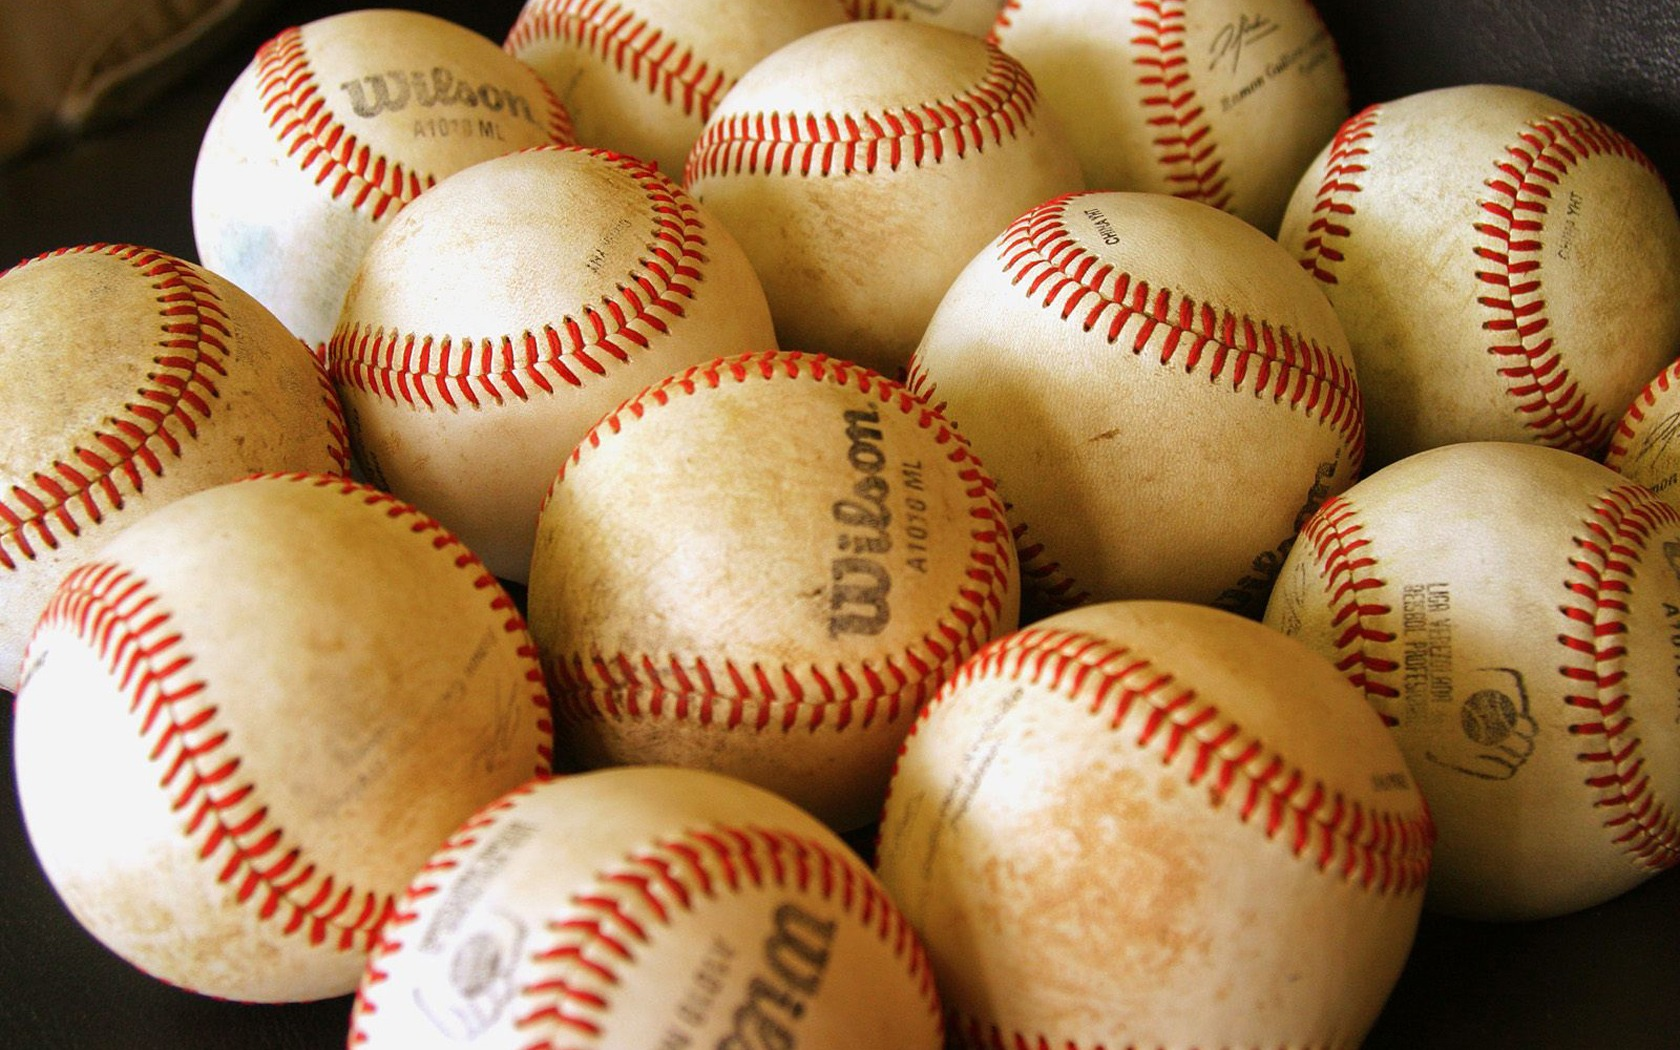 baseballs-wallpaper-baseball-sports_00431534